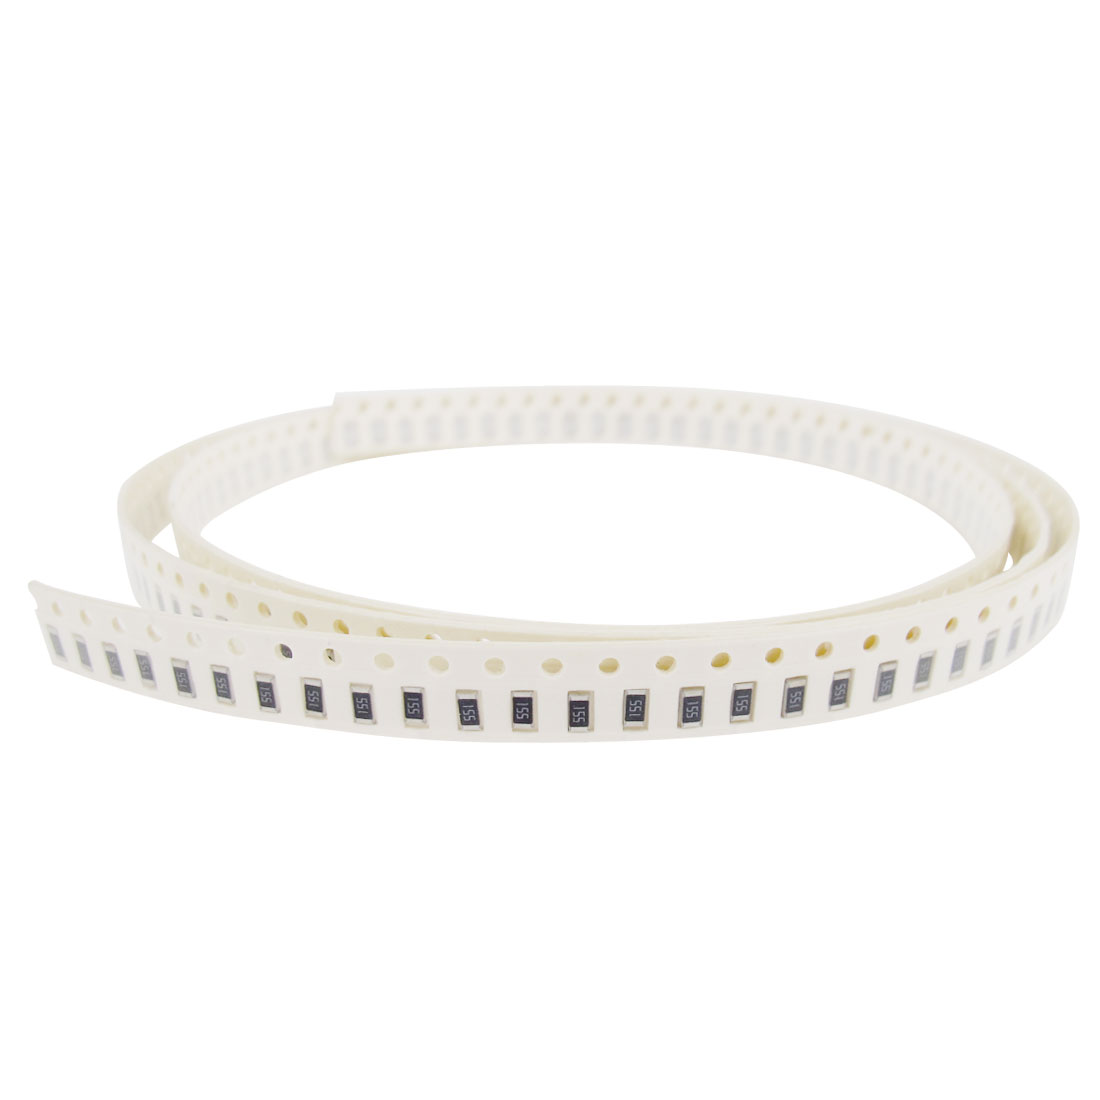 62K Ohm Resistance 1/4Watt 5% Tolerance Surface Mounting SMD SMT Chip Resistor Strip 1206 200Pcs